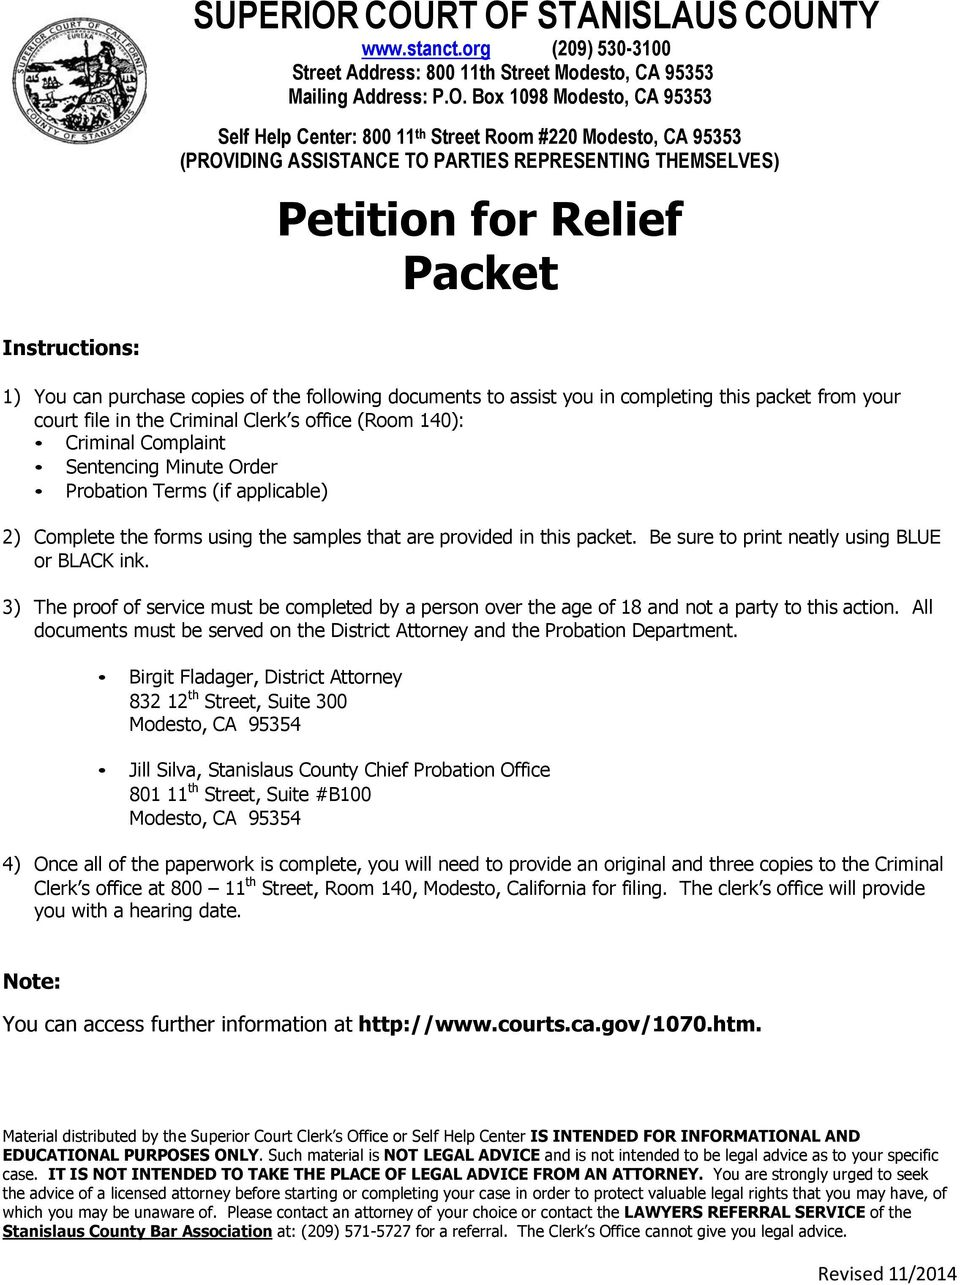 #220 Modesto, CA 95353 (PROVIDING ASSISTANCE TO PARTIES REPRESENTING THEMSELVES) Petition for Relief Packet Instructions: 1) You can purchase copies of the following documents to assist you in